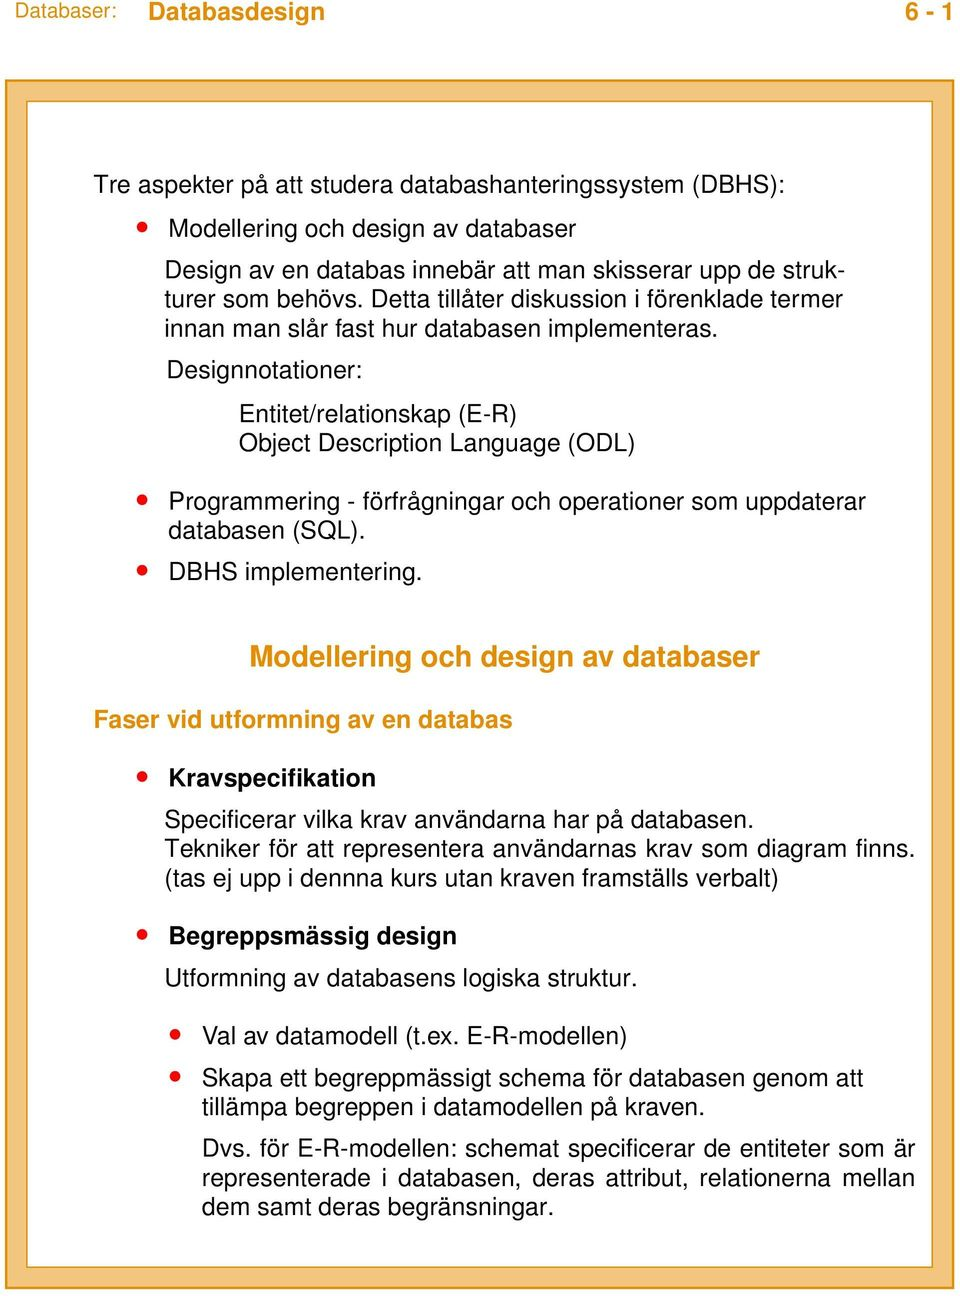 Designnotationer: Entitet/relationskap (E-R) Object Description Language (ODL) Programmering - förfrågningar och operationer som uppdaterar databasen (SQL). DBHS implementering.